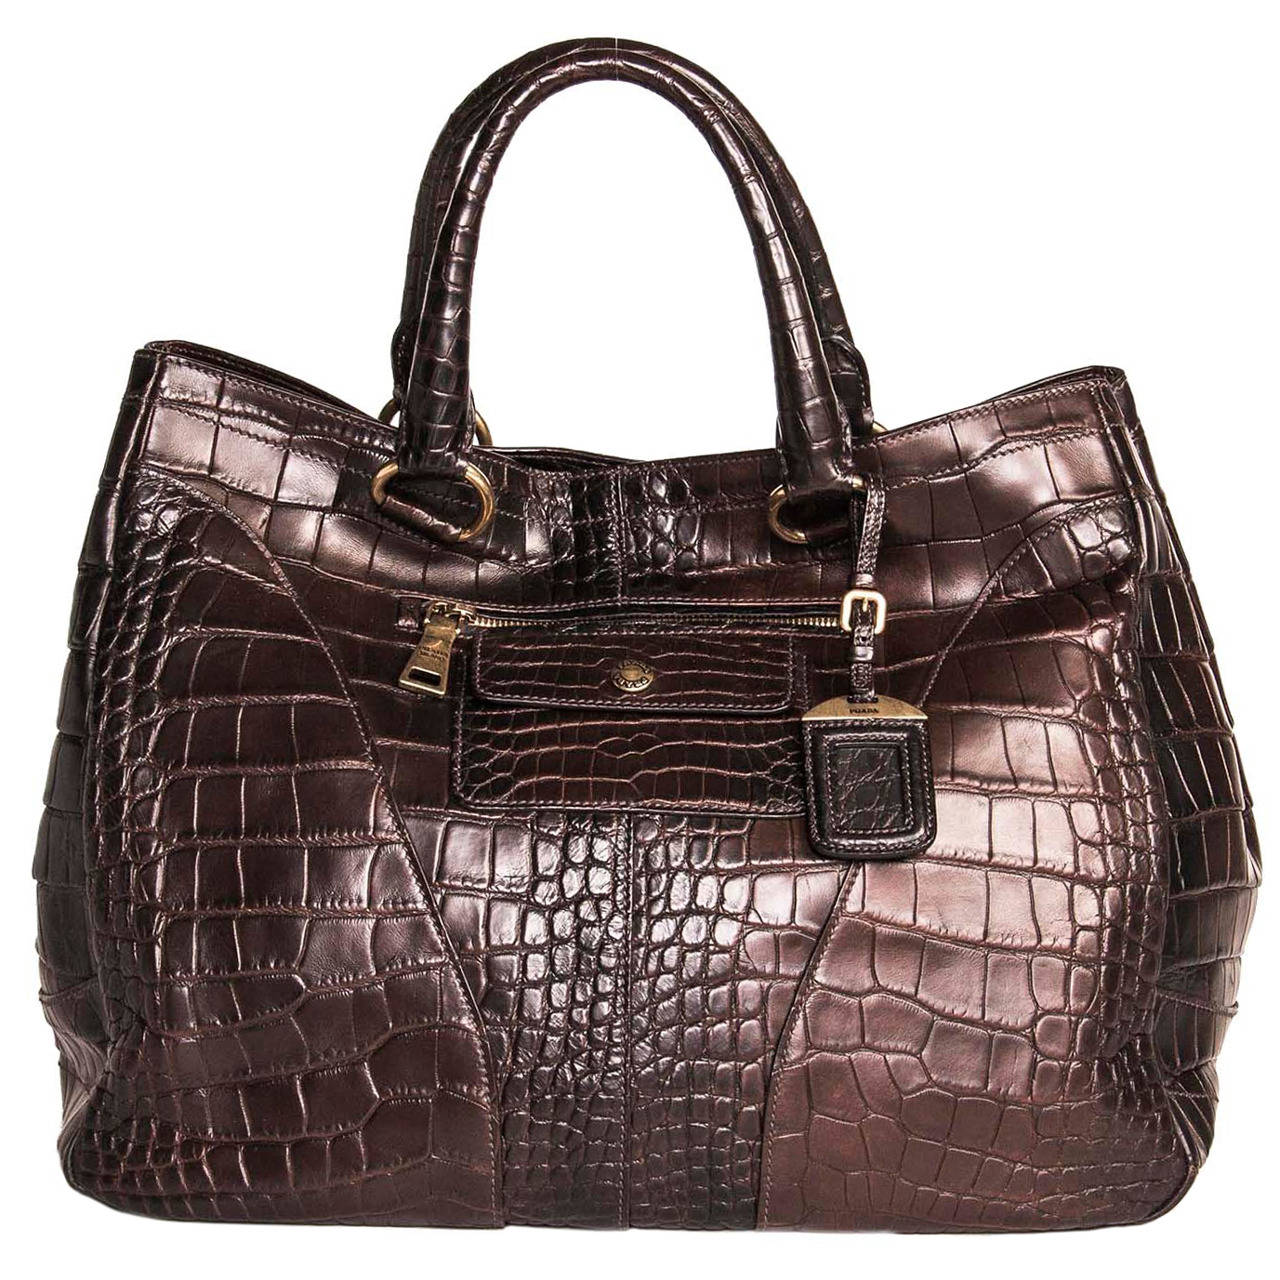 8134582af716 Prada Burgundy Crocodile Oversized Bag For Sale at 1stdibs